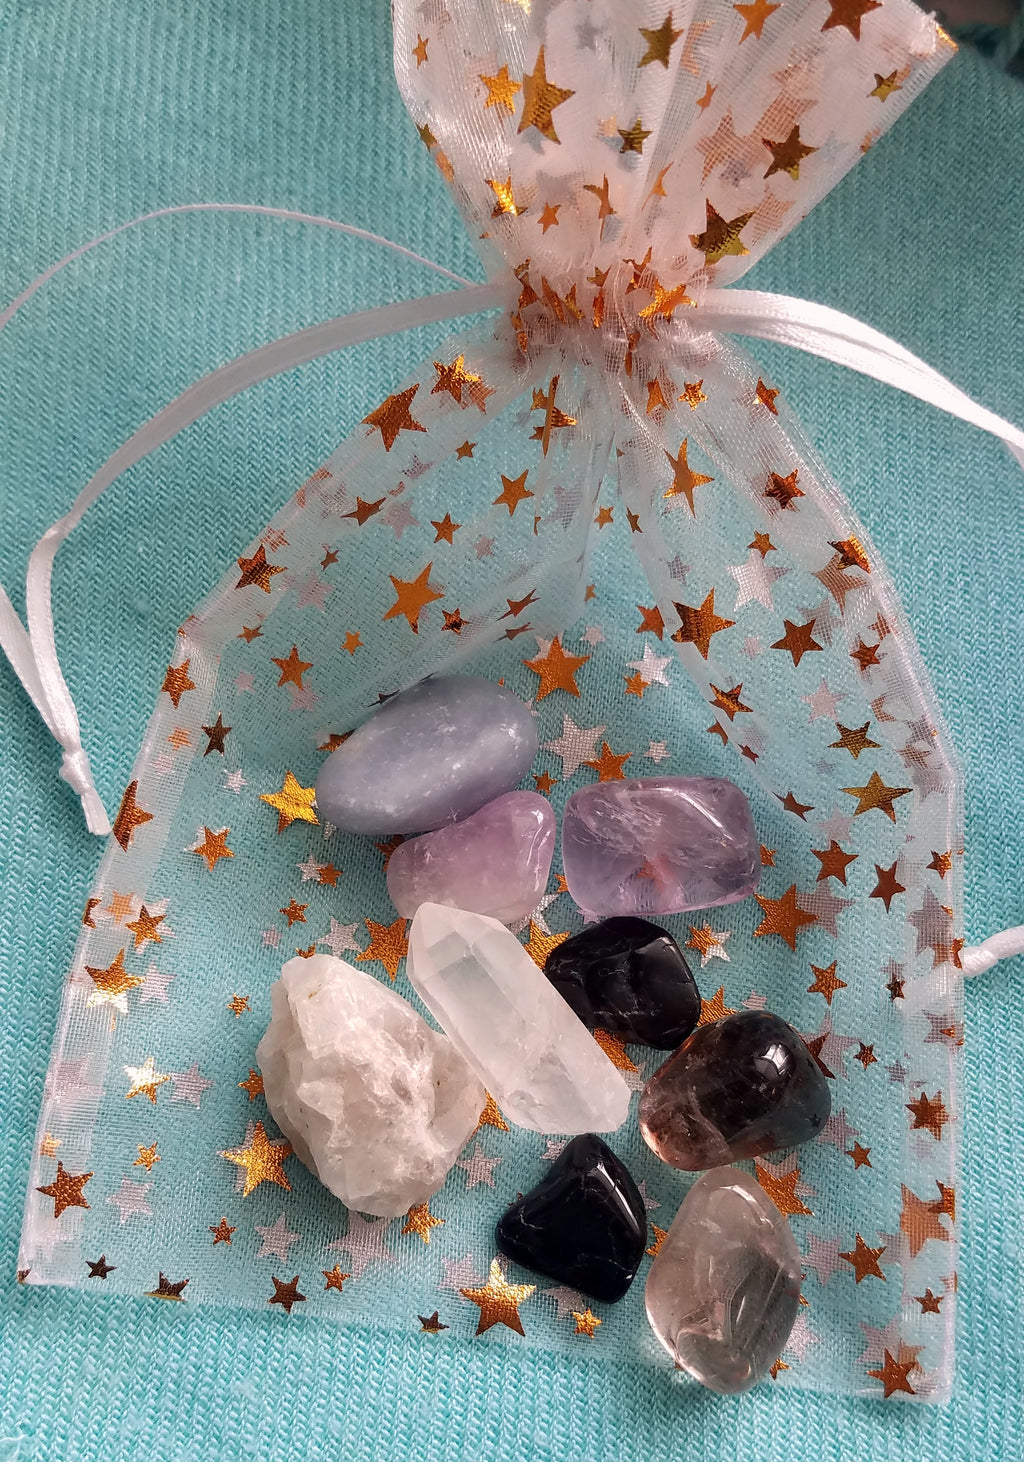 Crystal Power Pack:  Sleep Well!